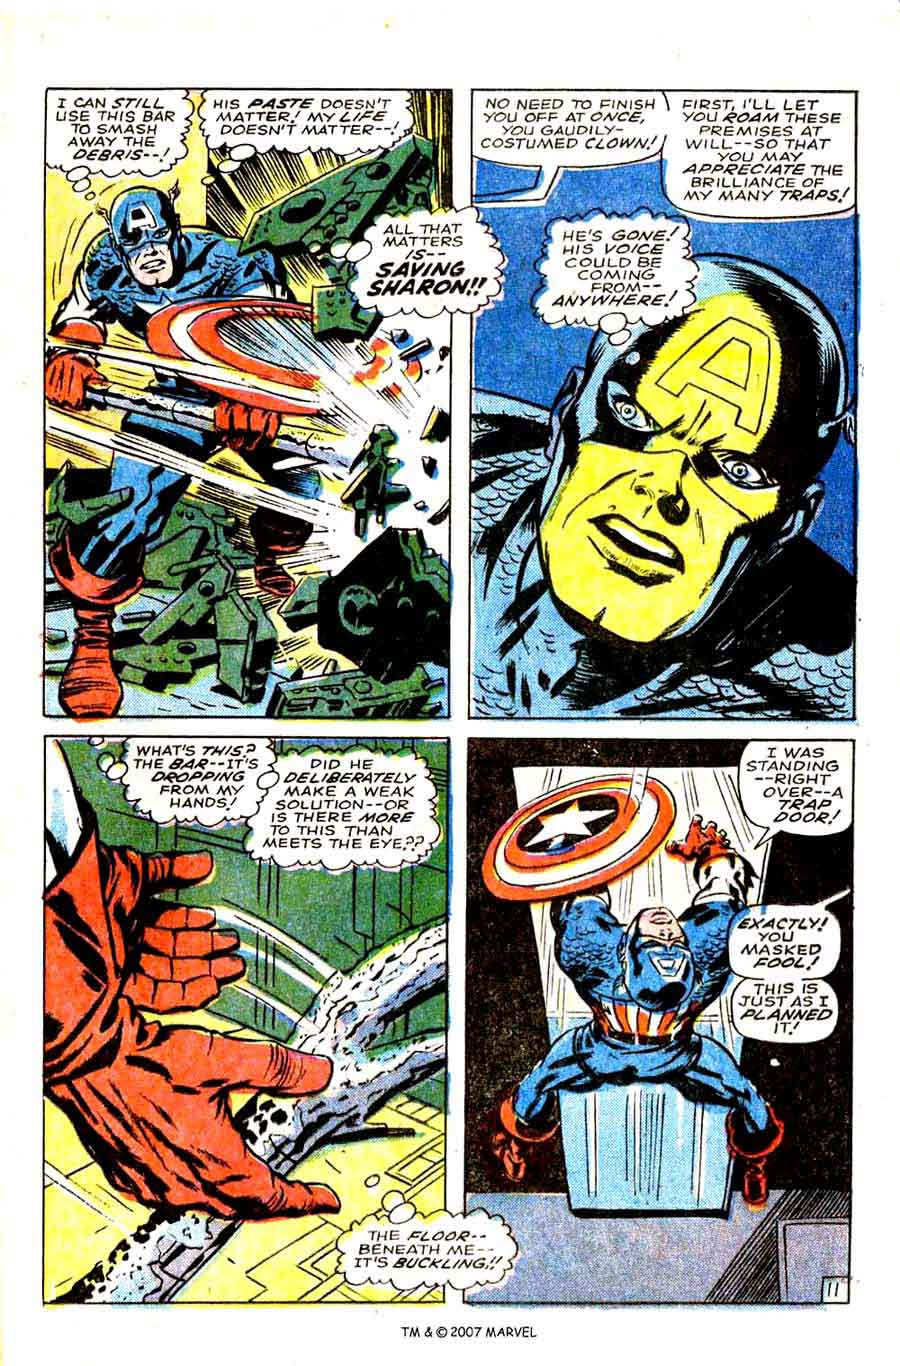 Captain America v1 #108 marvel comic book page art by Jack Kirby